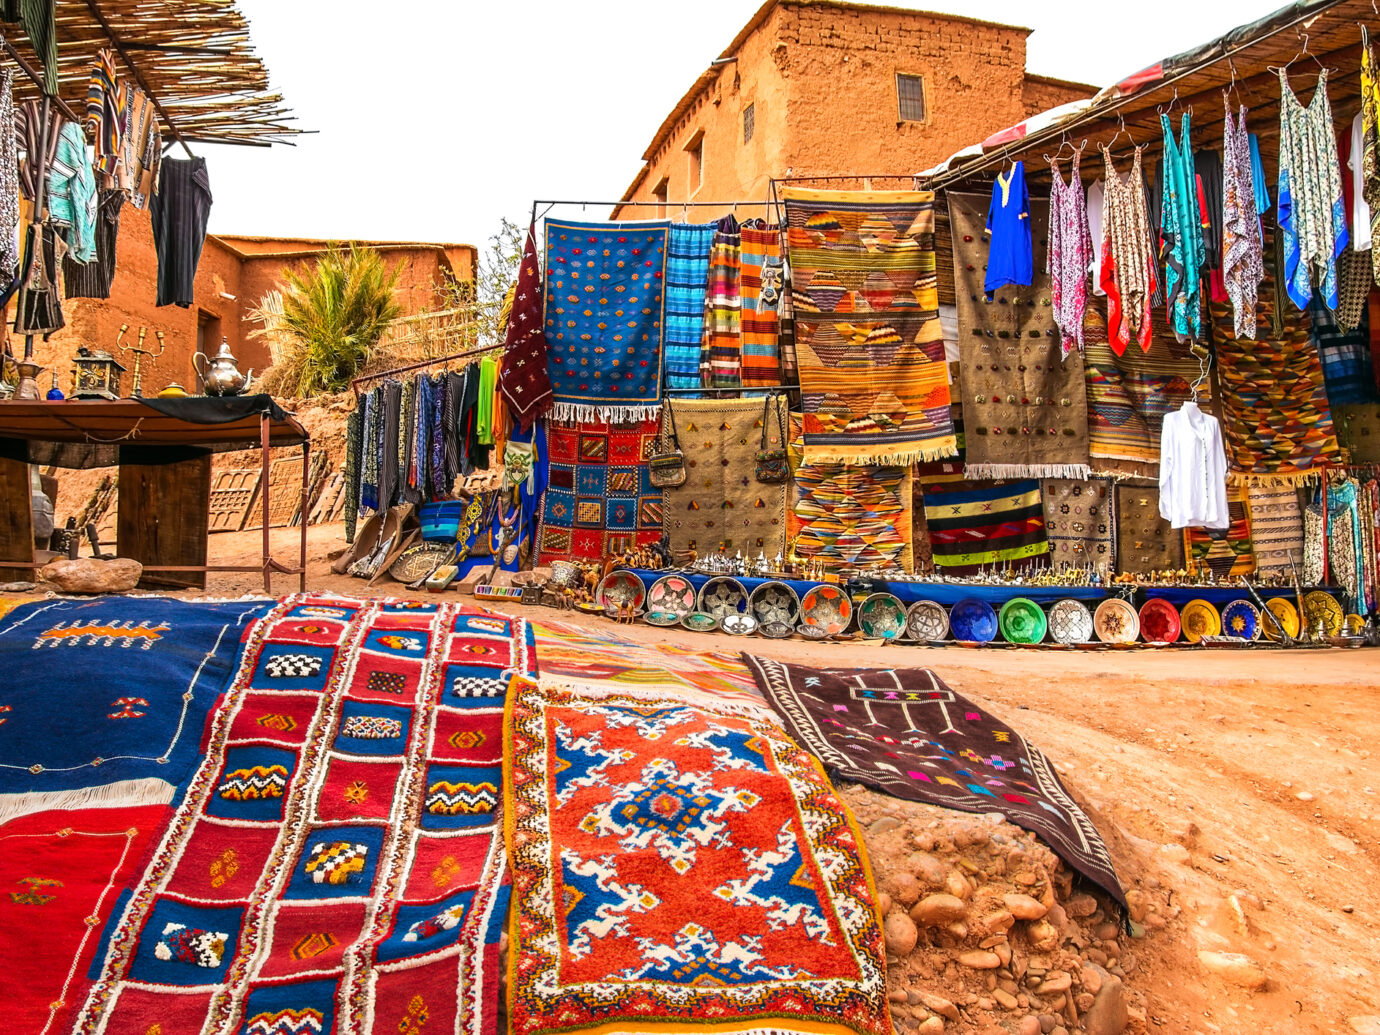 Souvenir shop in the open air in Kasbah Ait Ben Haddou near Ouarzazate in the Atlas Mountains of Morocco.